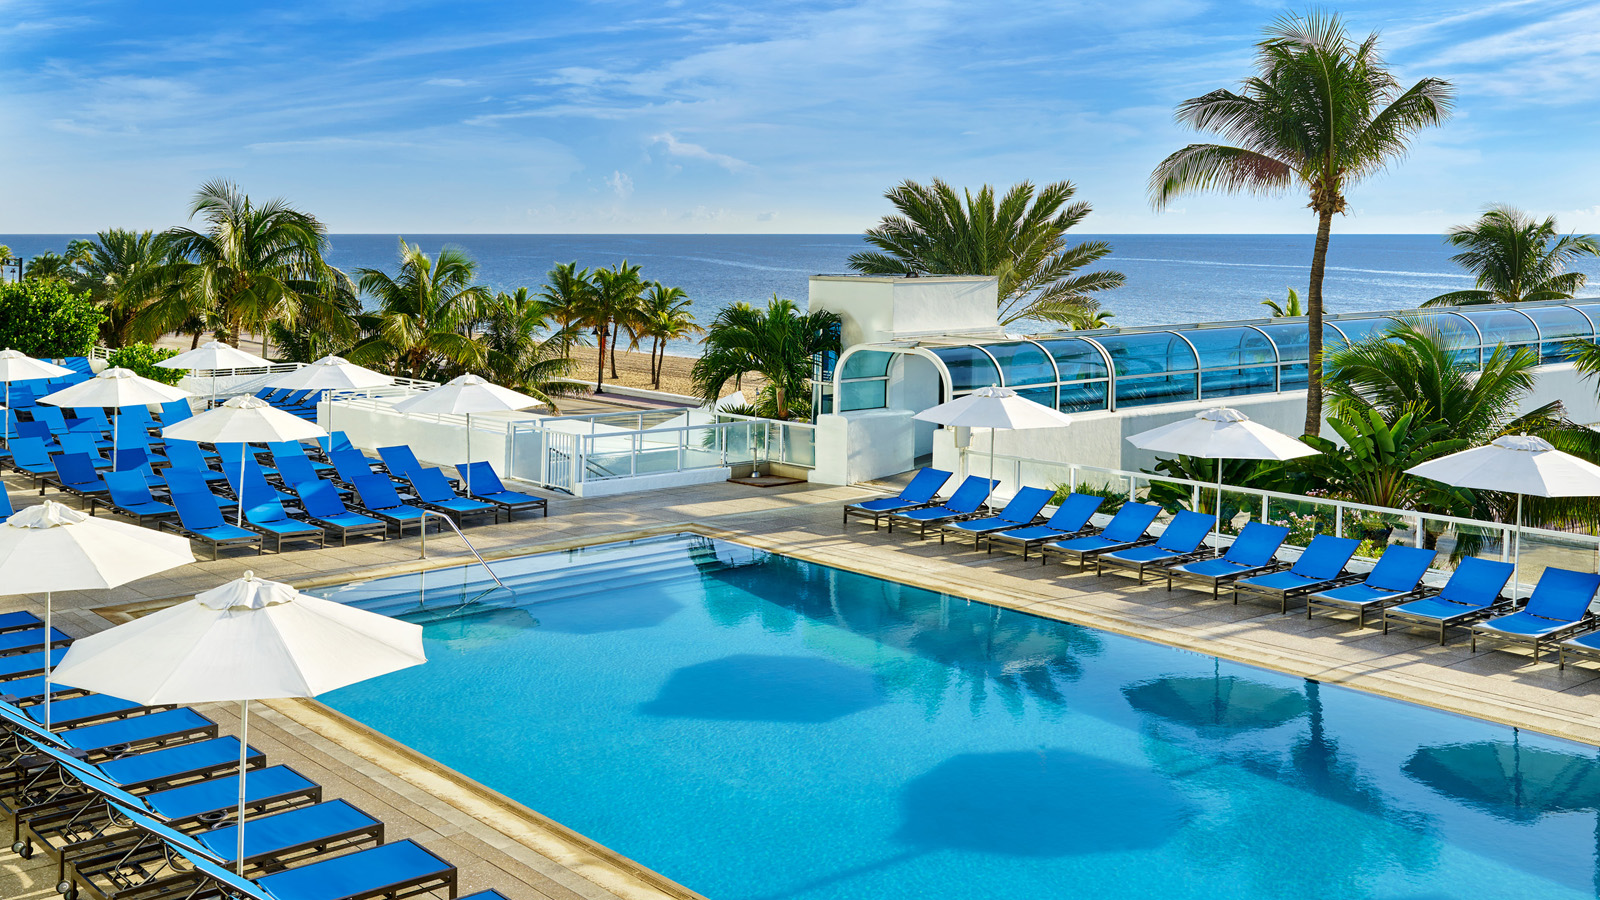 Pool Facilities at The Westin Fort Lauderdale Beach Resort